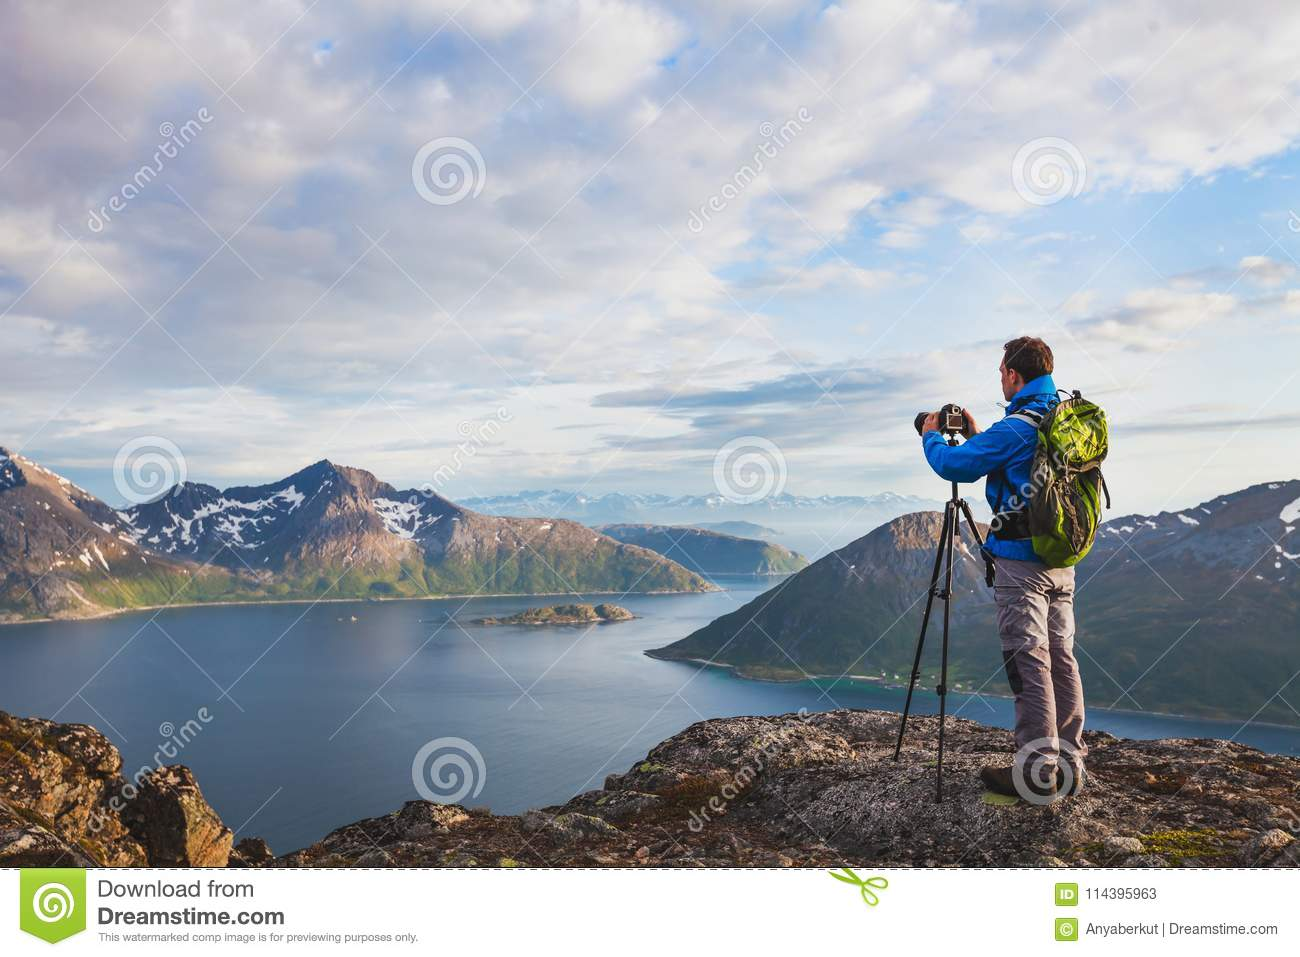 Landscape photographer working with tripod and dslr camera